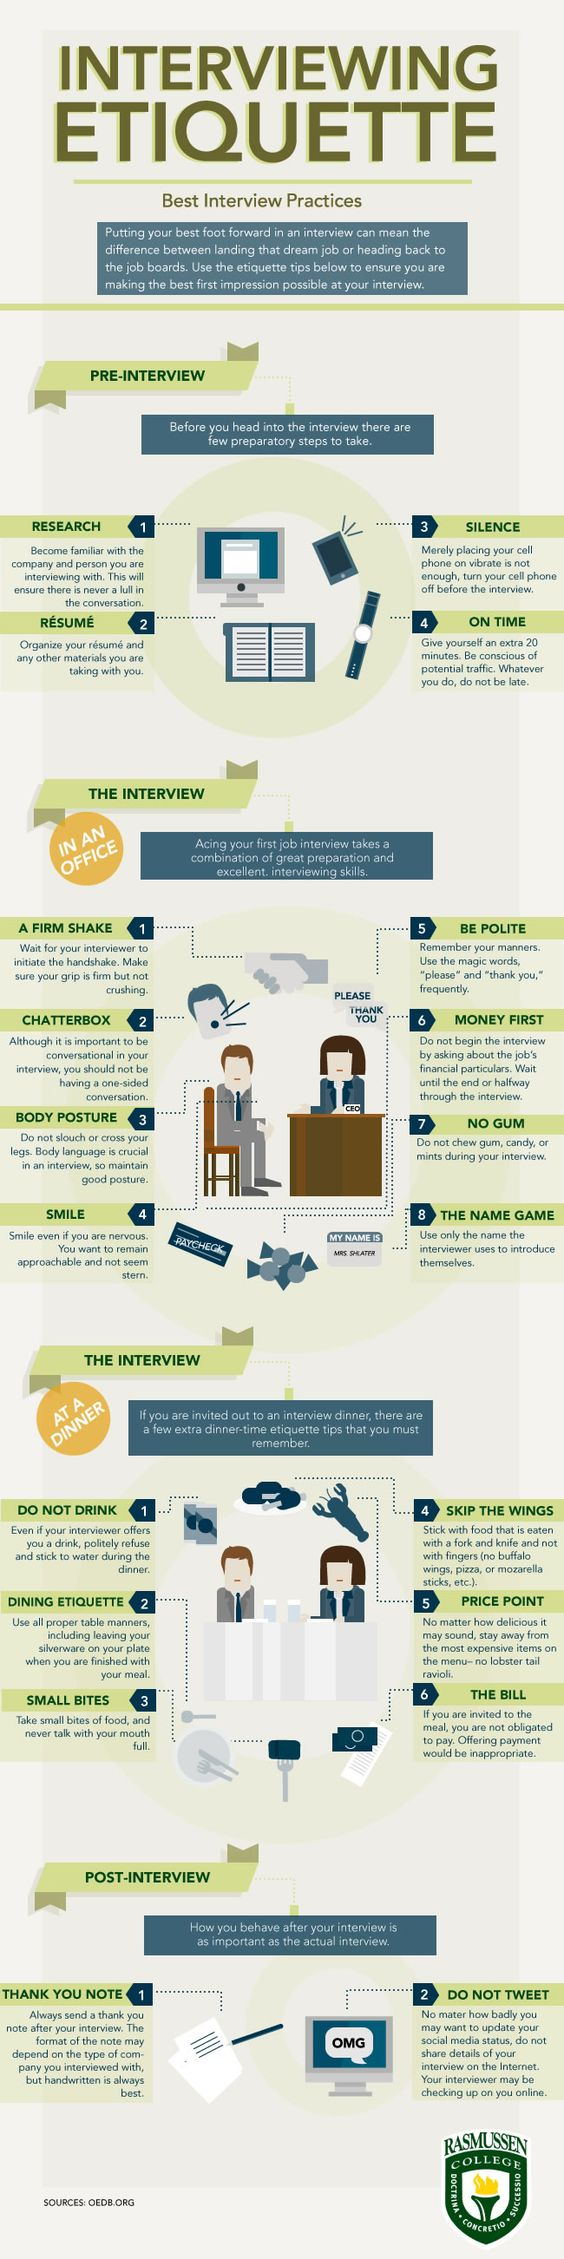 Interview etiquette_infographic